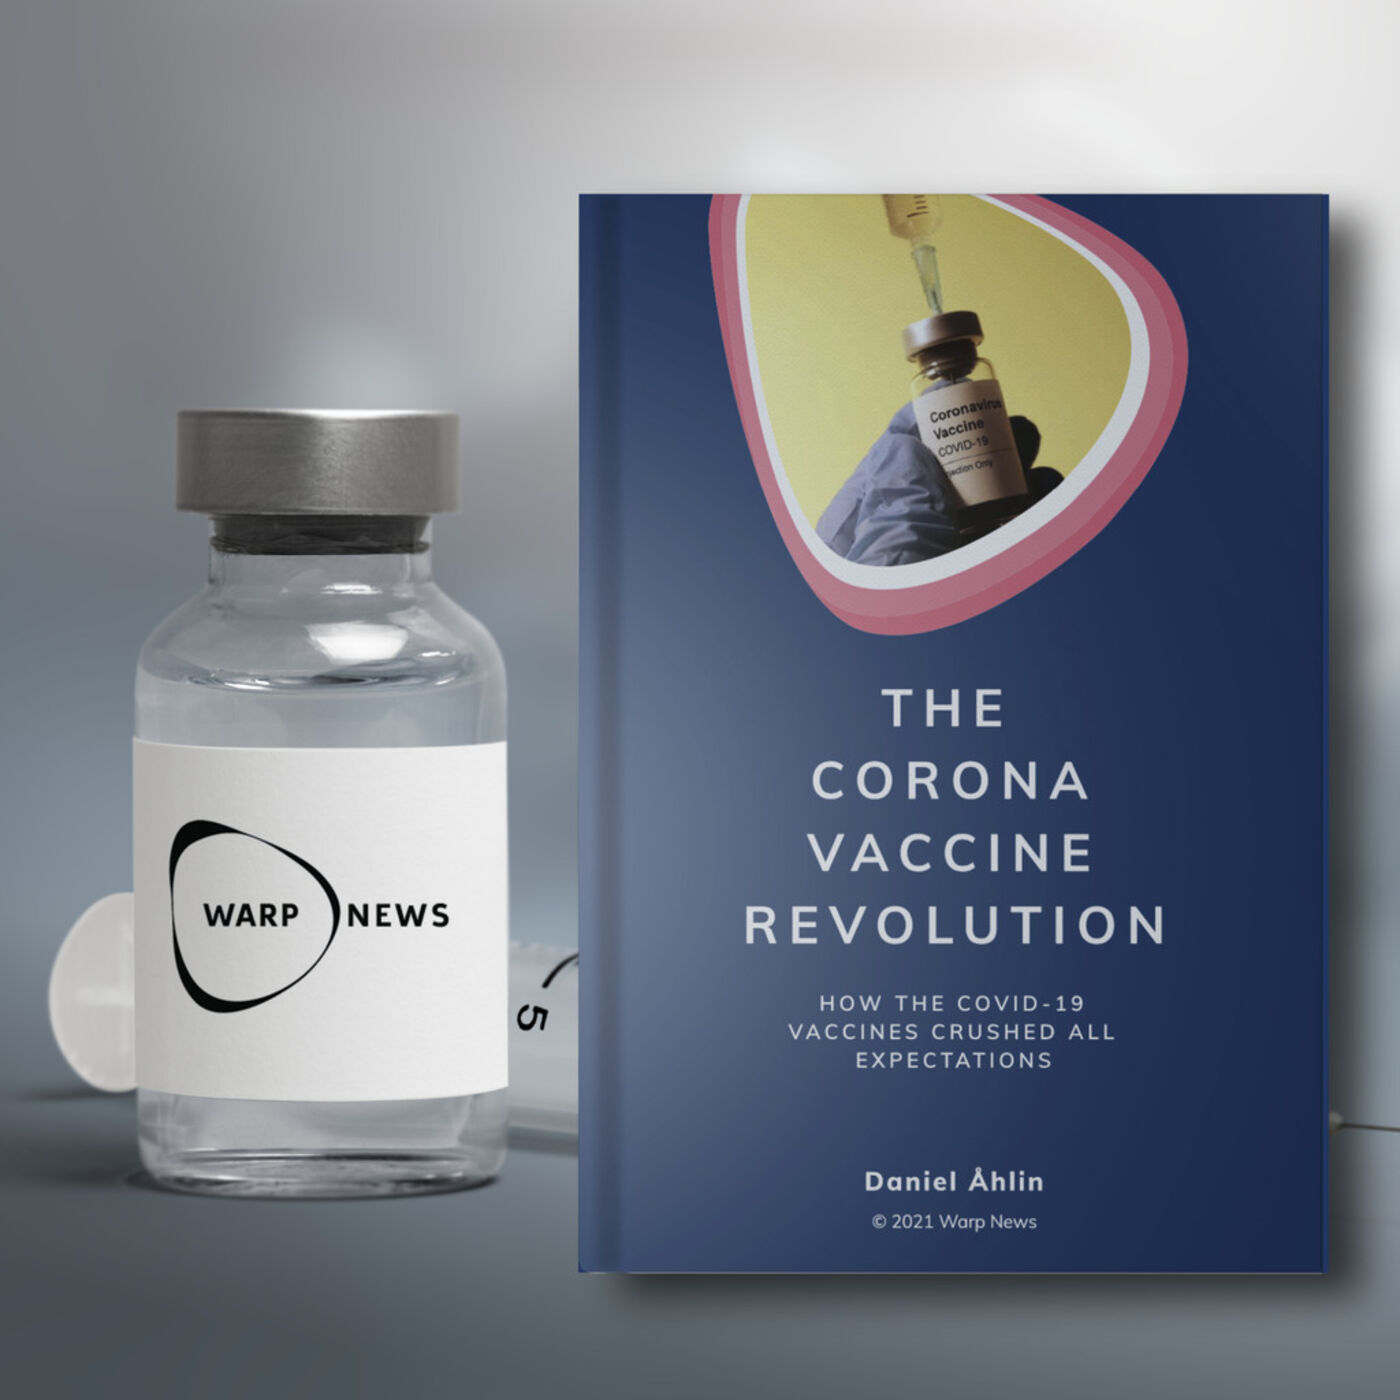 🎙️ The Corona Vaccine Revolution:  An interview with the author, Daniel Åhlin